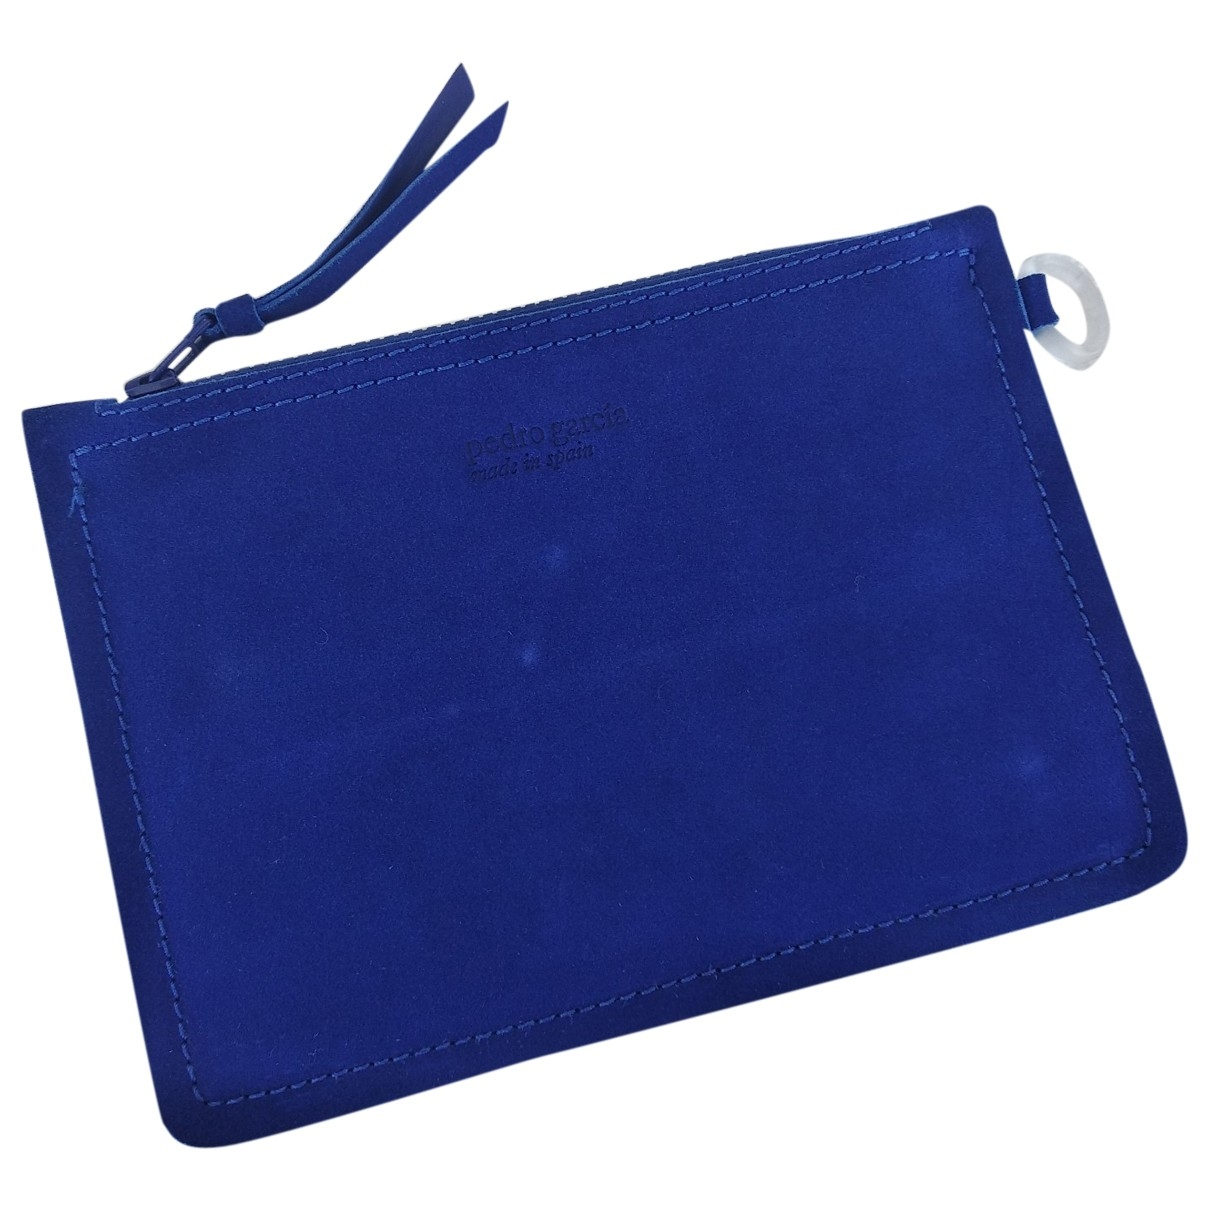 Pedro Garcia \N Blue Suede Clutch bag for Women \N